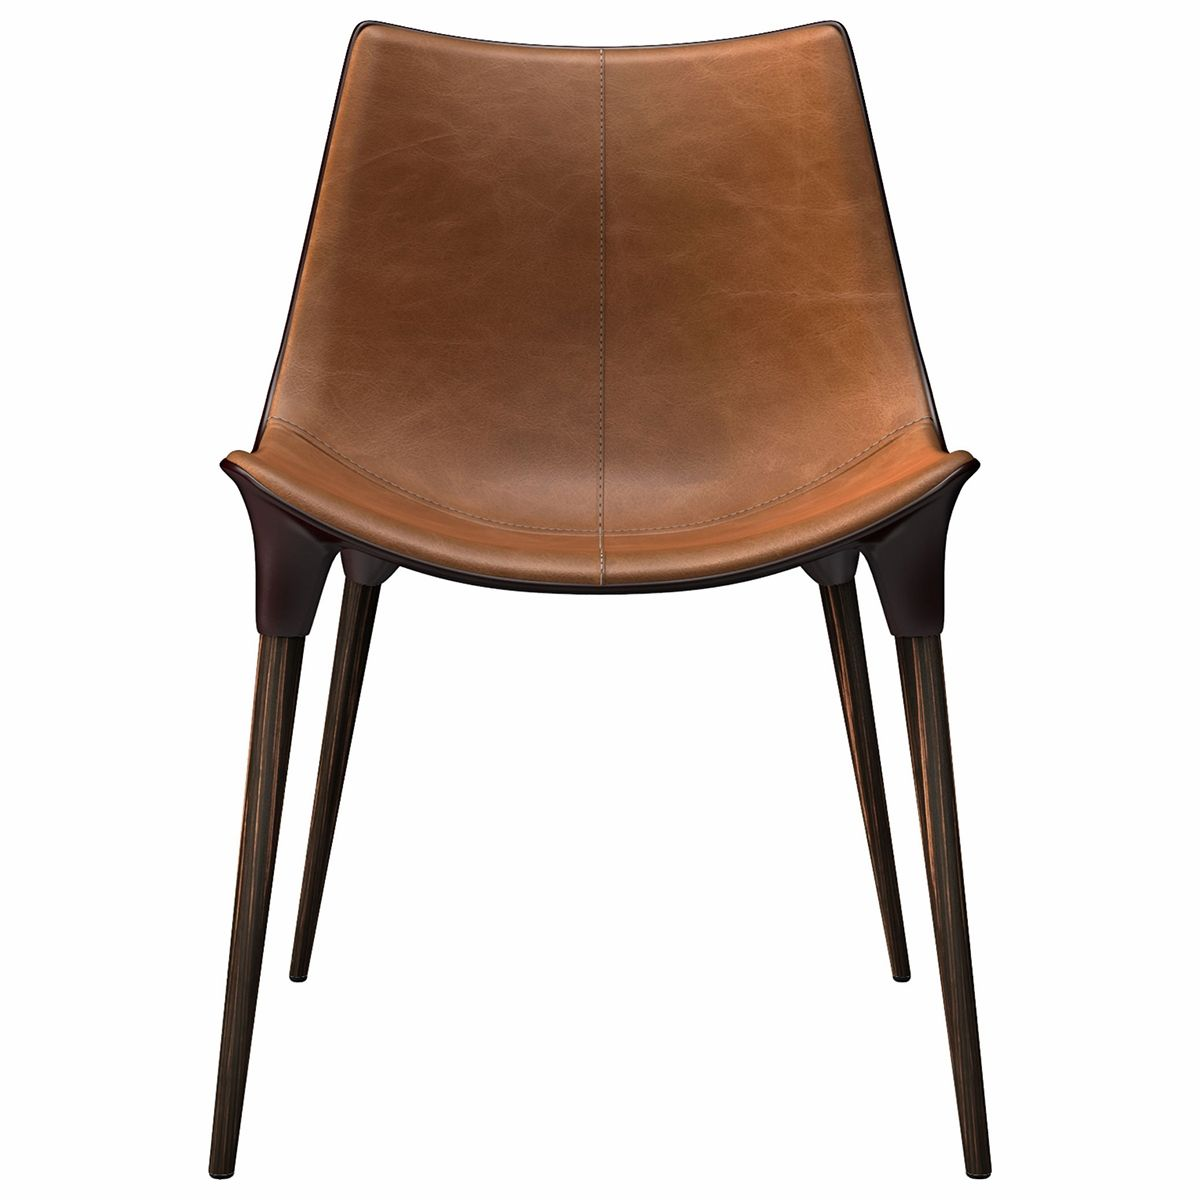 Langham Dining Chair (Leather Seat)  Dining chairs, Leather